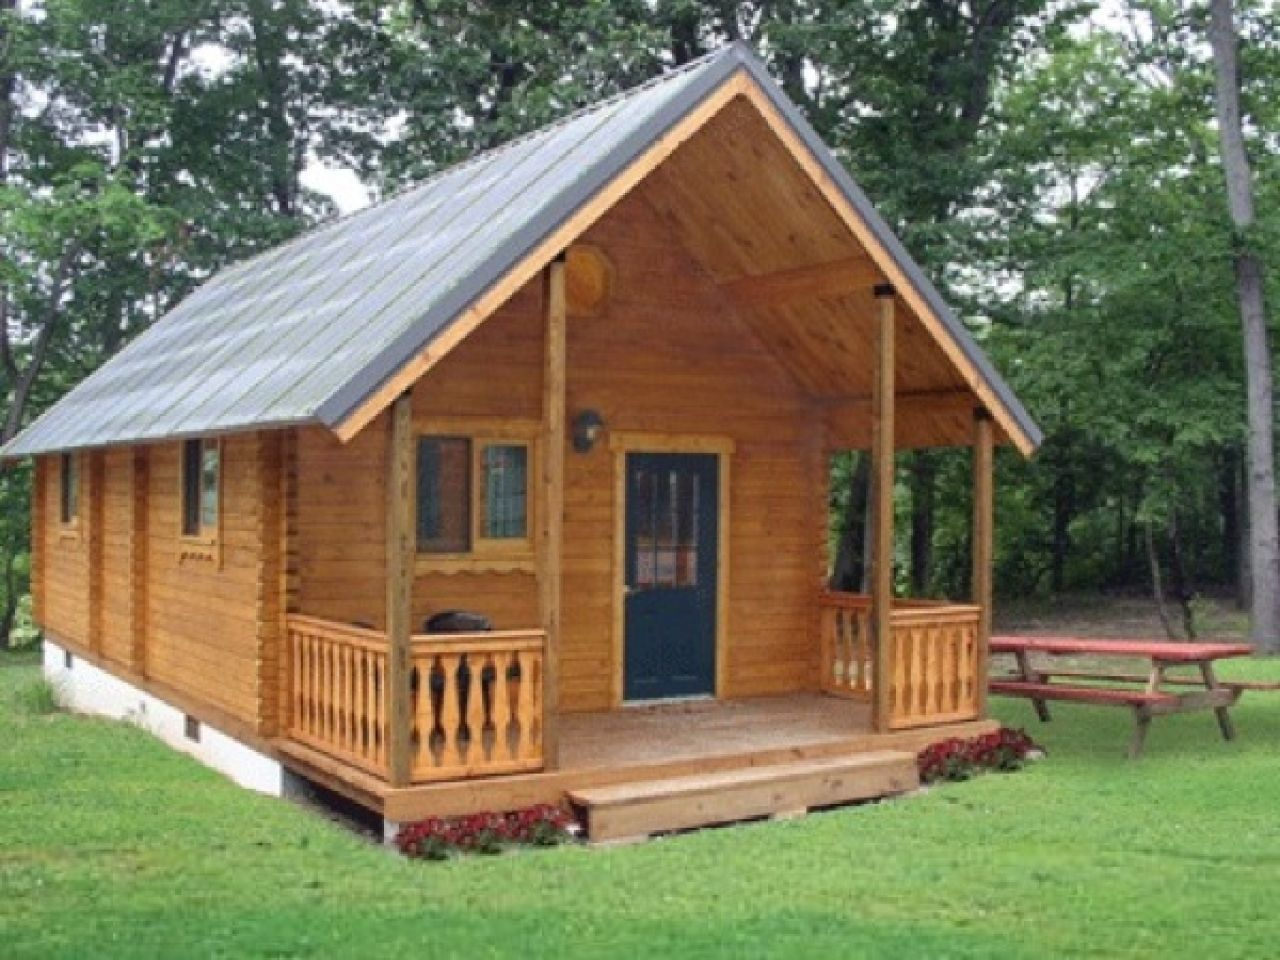 Small Log Cabin Kit Homes Small Log Cabin Floor Plans: Small Cabins With Lofts Small Cabins Under $800 Sq FT, 800